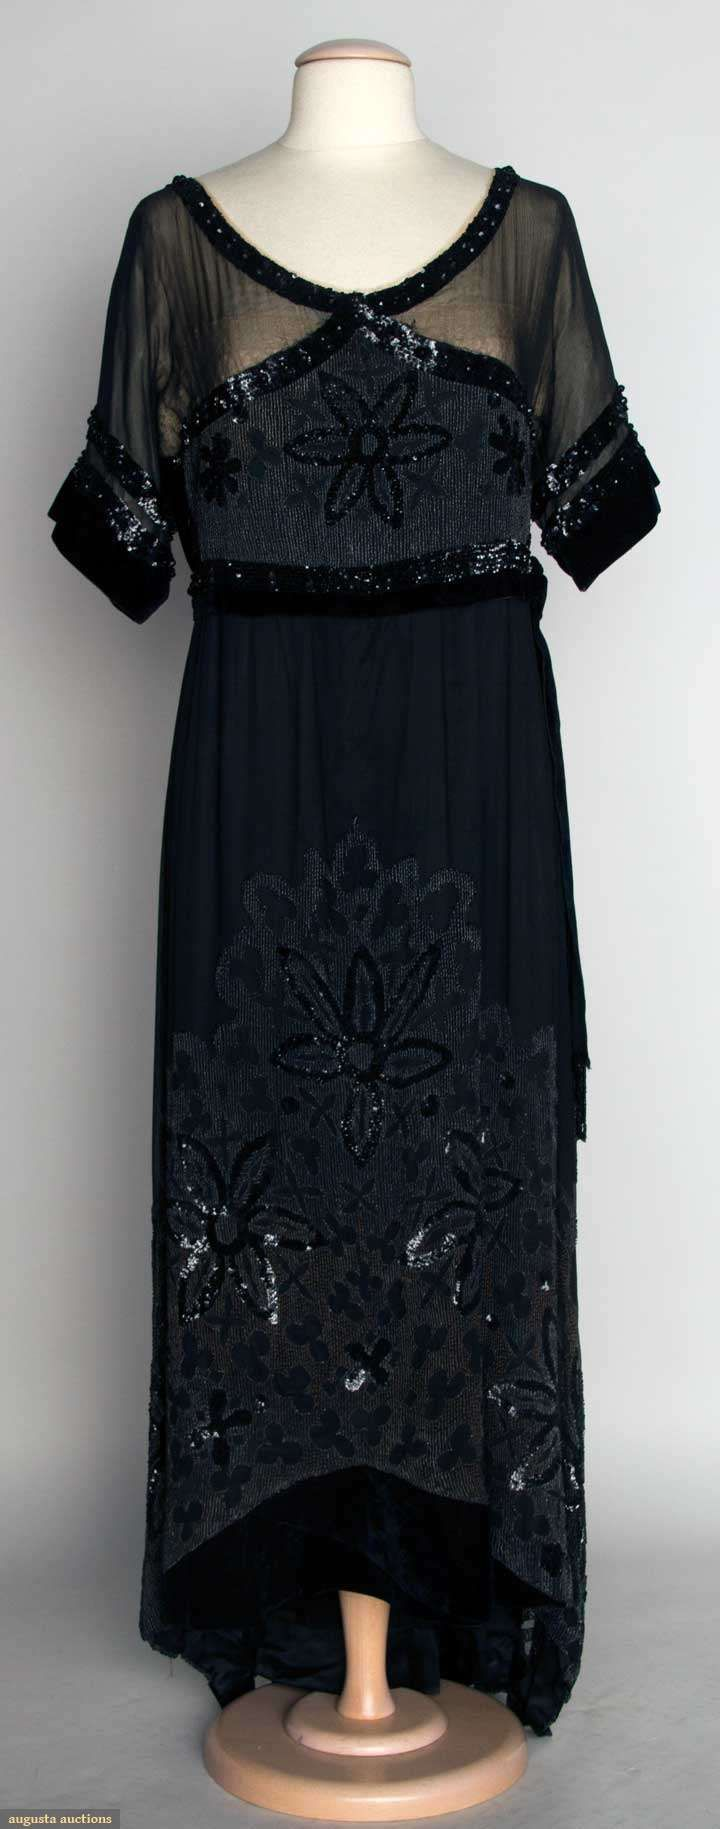 BLACK VELVET EVENING GOWN, c. 1912 1-piece, sheer chiffon over lace bodice, short sleeves, embellished w/ jet beads & sequins